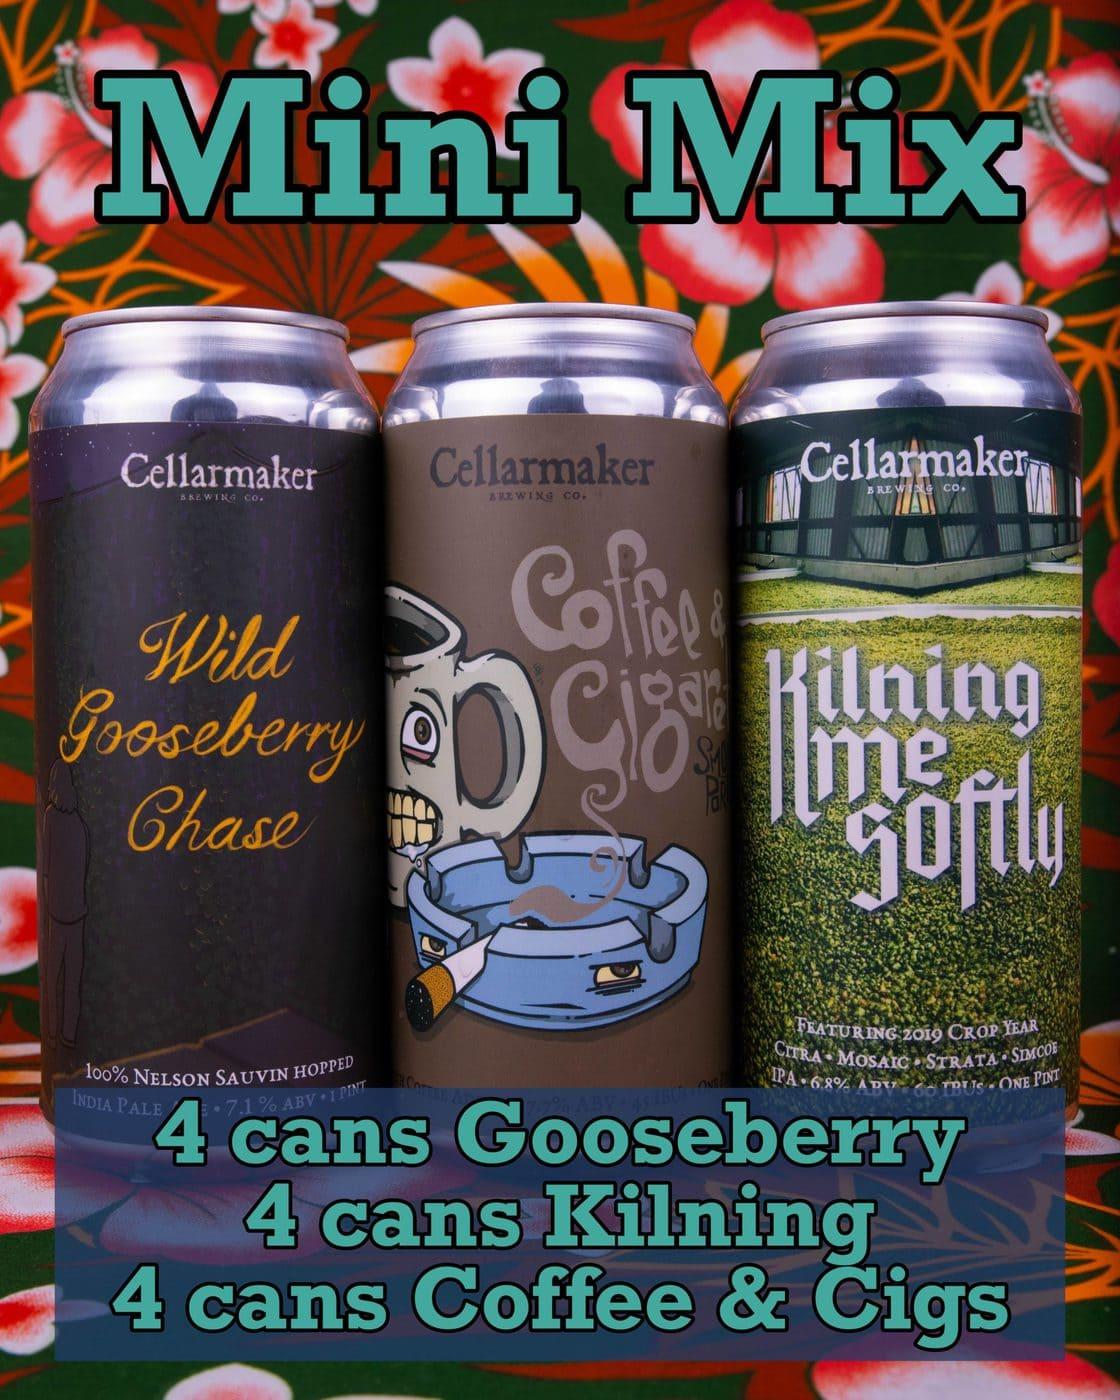 MINI MIX ~ 4 CANS  Wild Gooseberry Chase IPA, 4 CANS Kilning Me Softly IPA & 4 CANS Coffee & Cigs … SHIPPING Out On TUESDAY 8/11 For NEXT DAY Delivery*